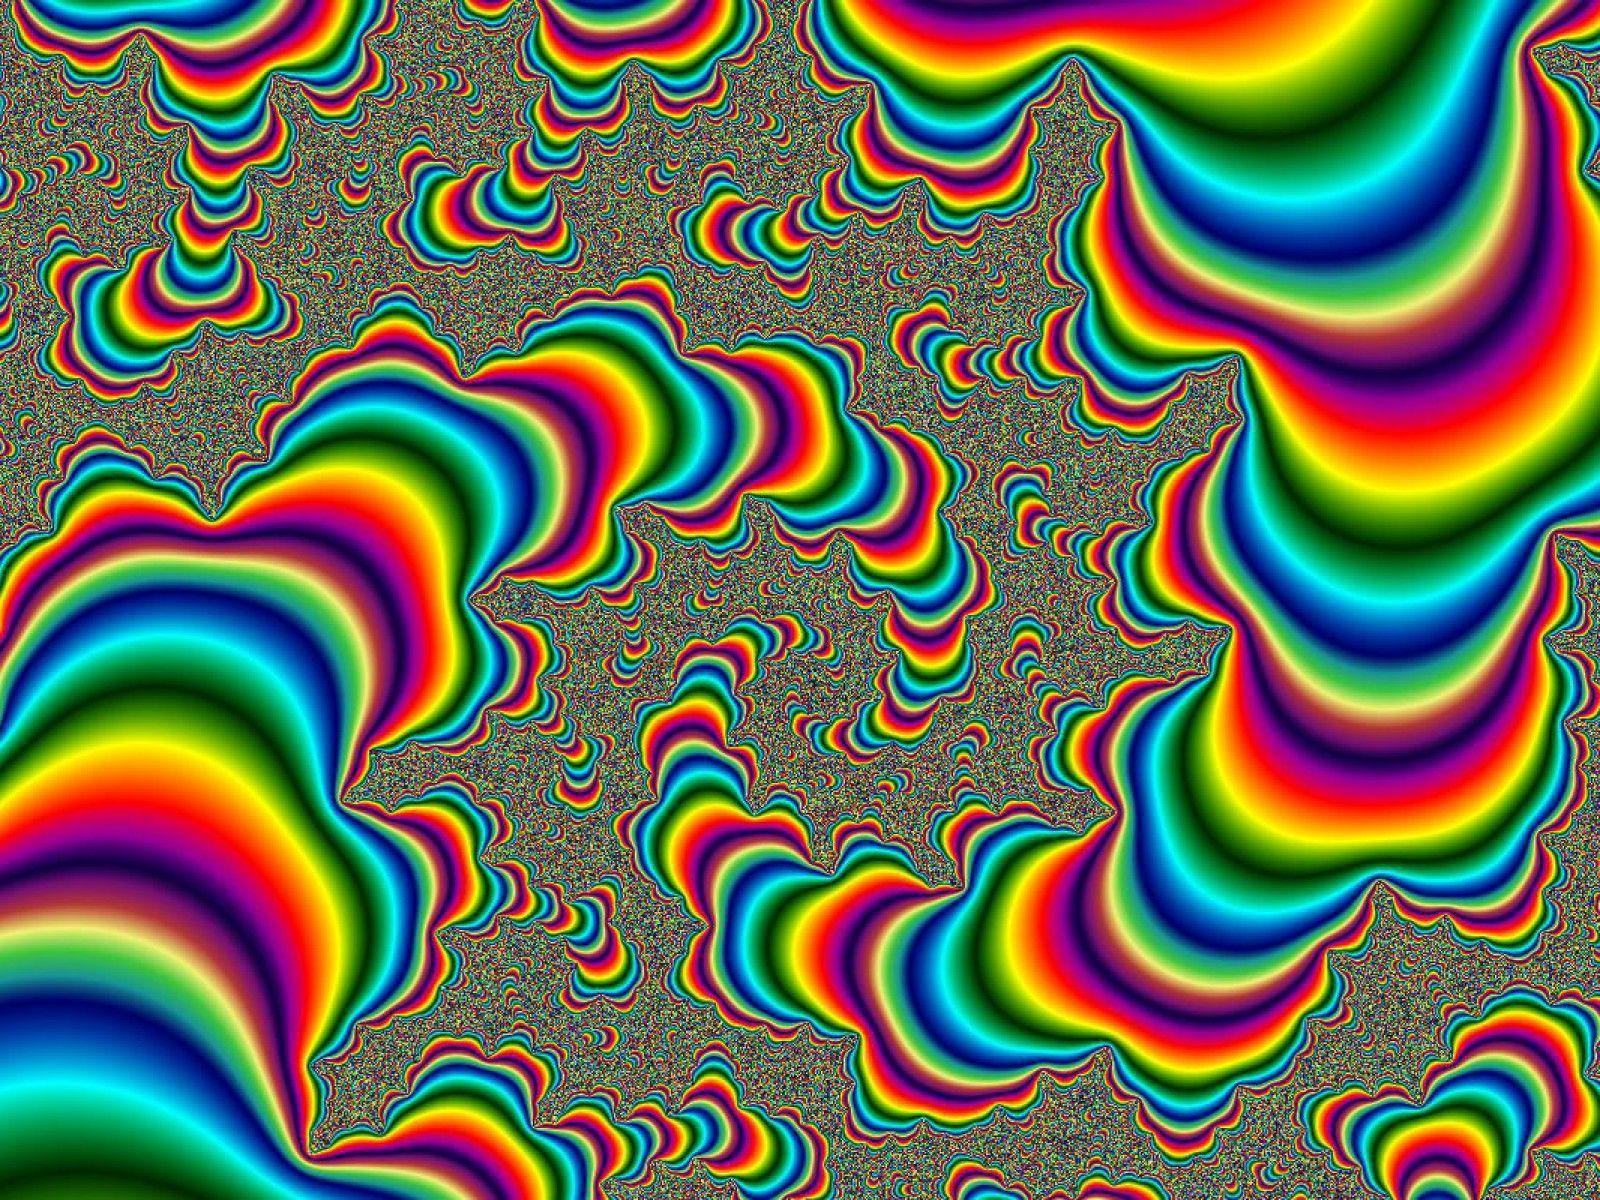 trippy moving illusions backgrounds optical wallpapers background psychedelic move hippie hd animated powerpoint desktop crazy iphone quotes disney cute android